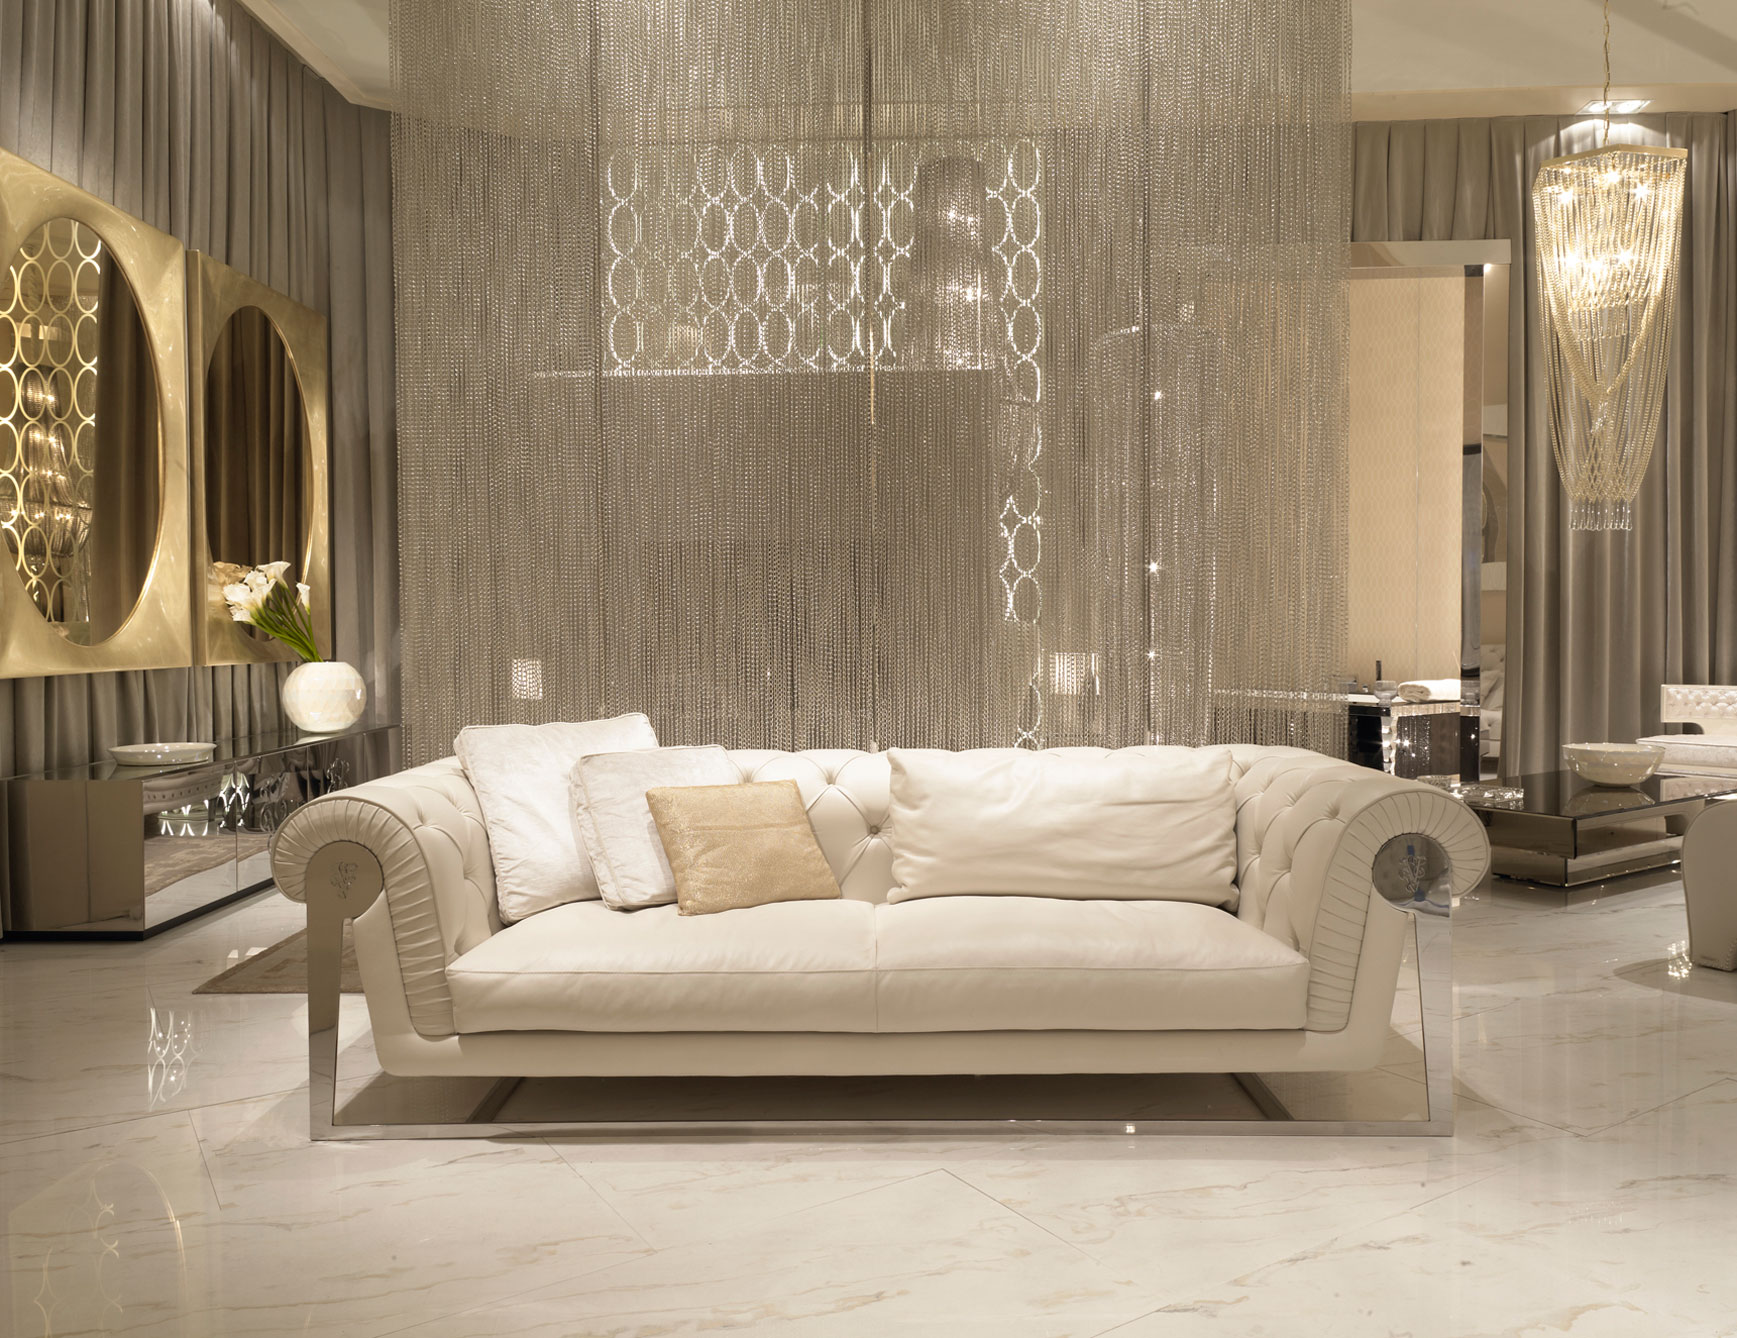 Golden Frame Mirror Luxury Look Ivory Color Sofa Calm Mood